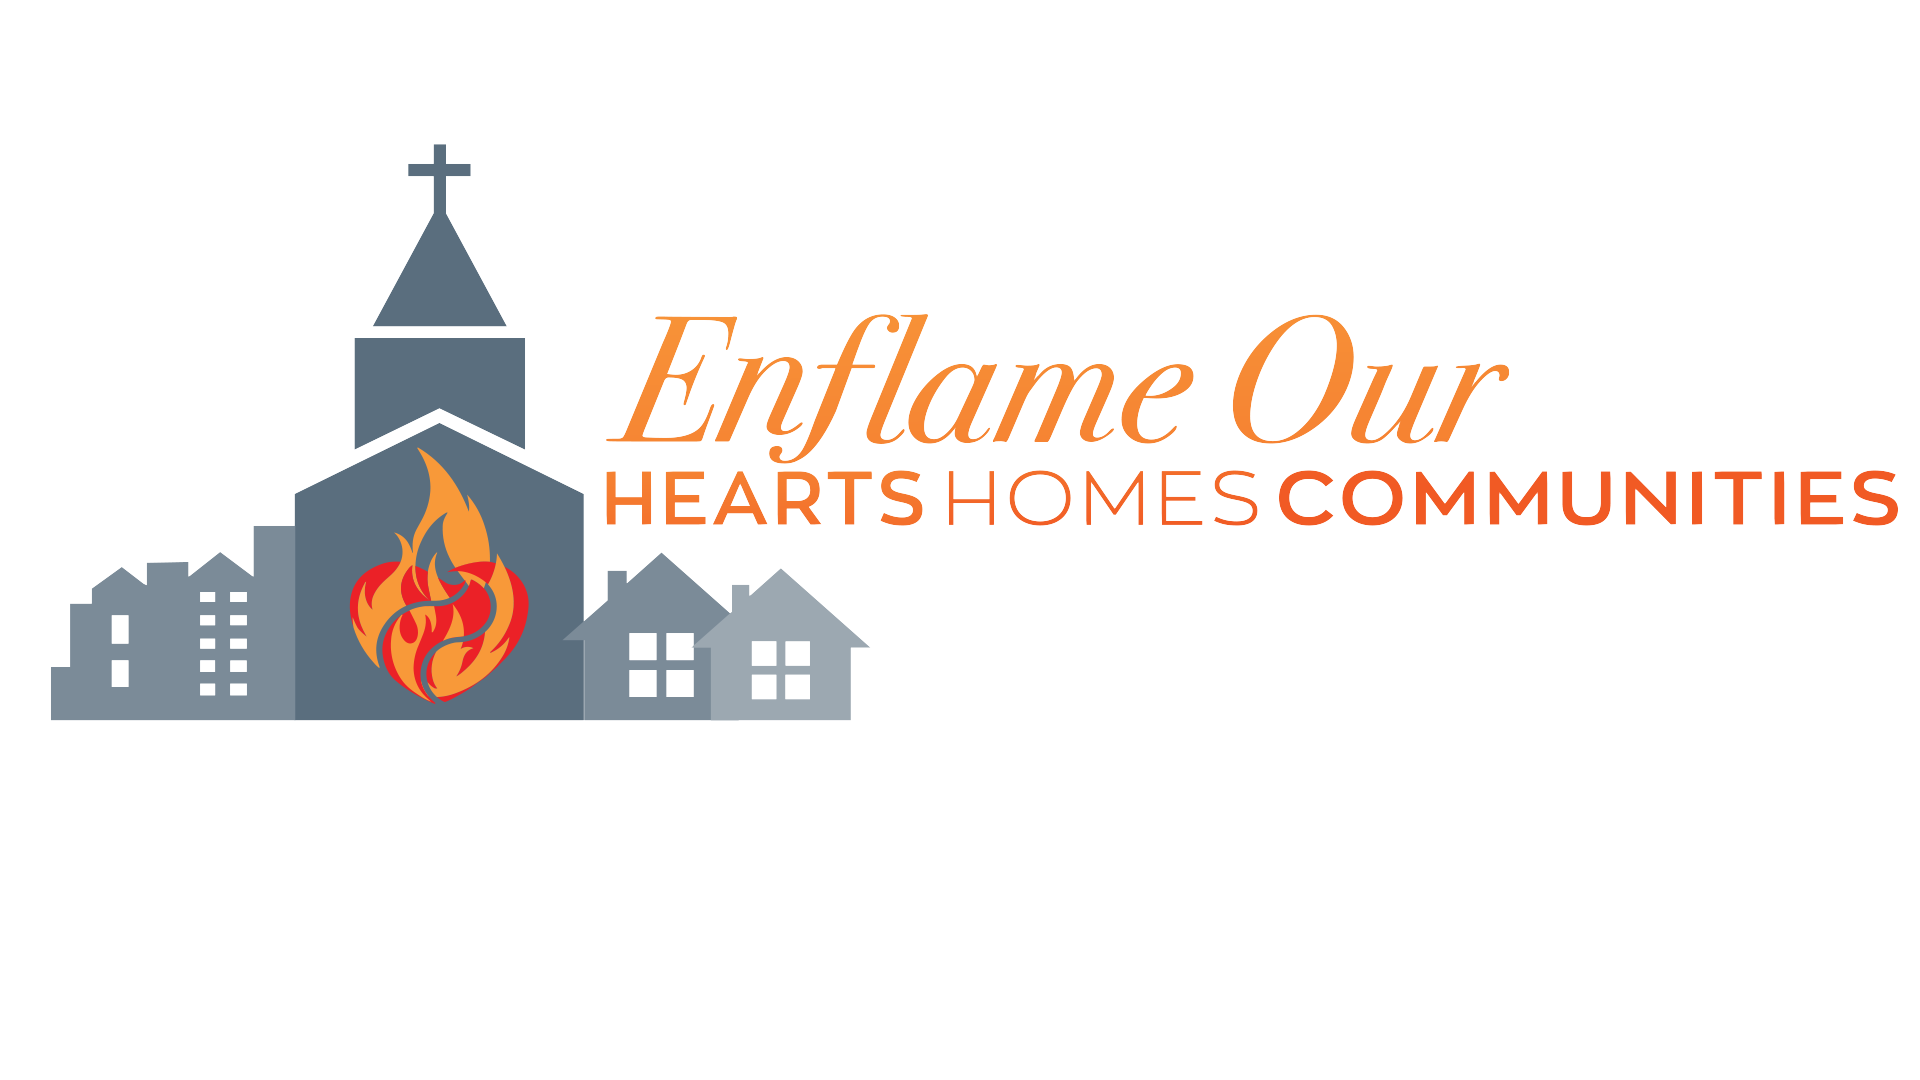 Enflame our Hearts, Homes, Communities